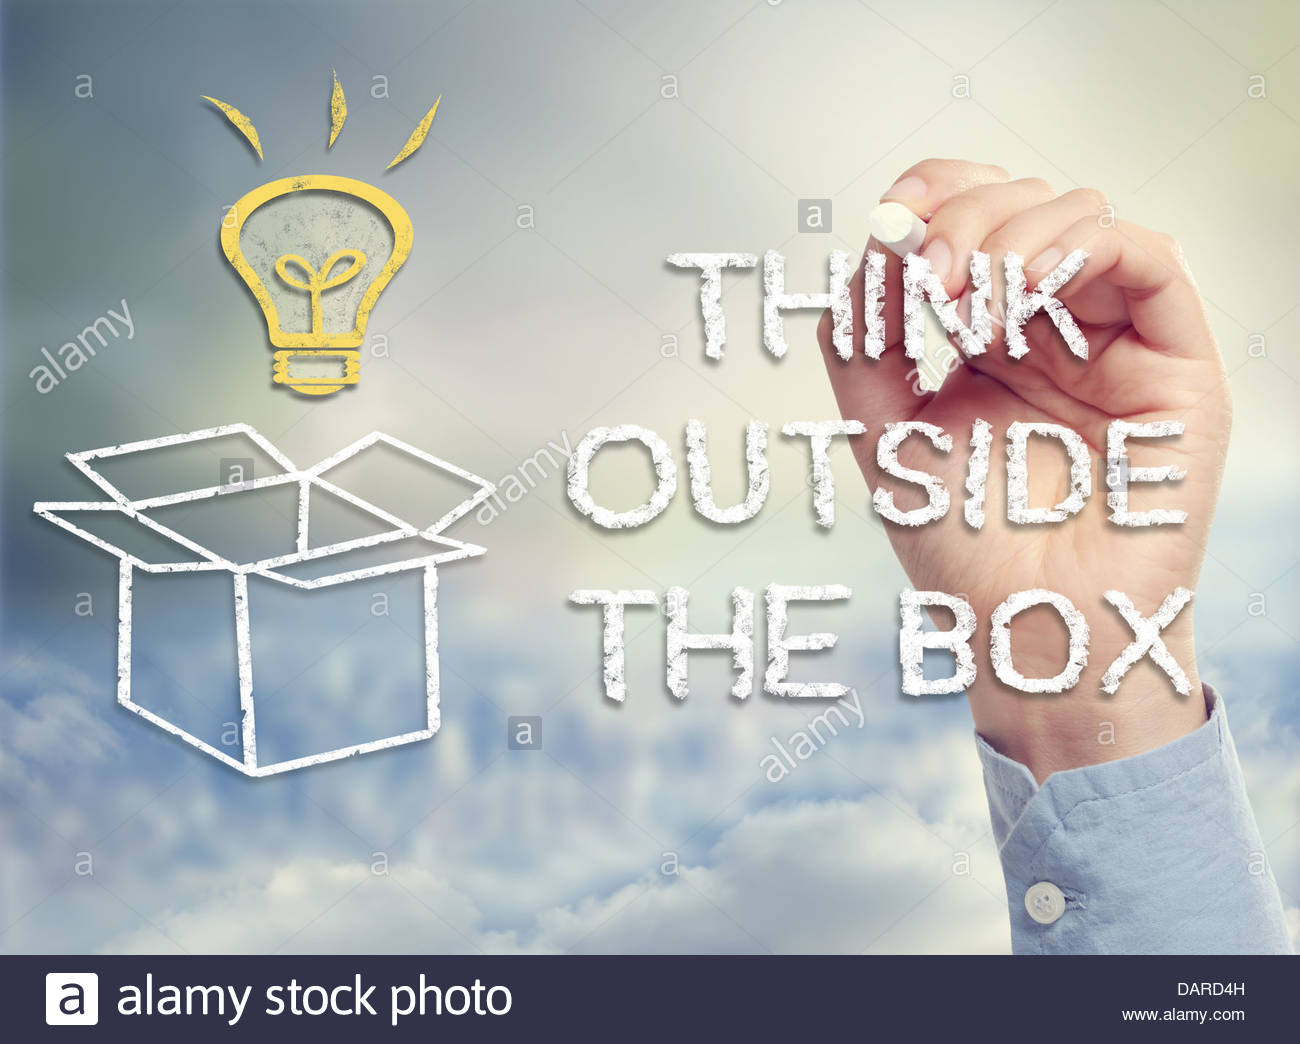 1300x1044 Think Outside The Box Concept With Idea Light Bulb And Open Box